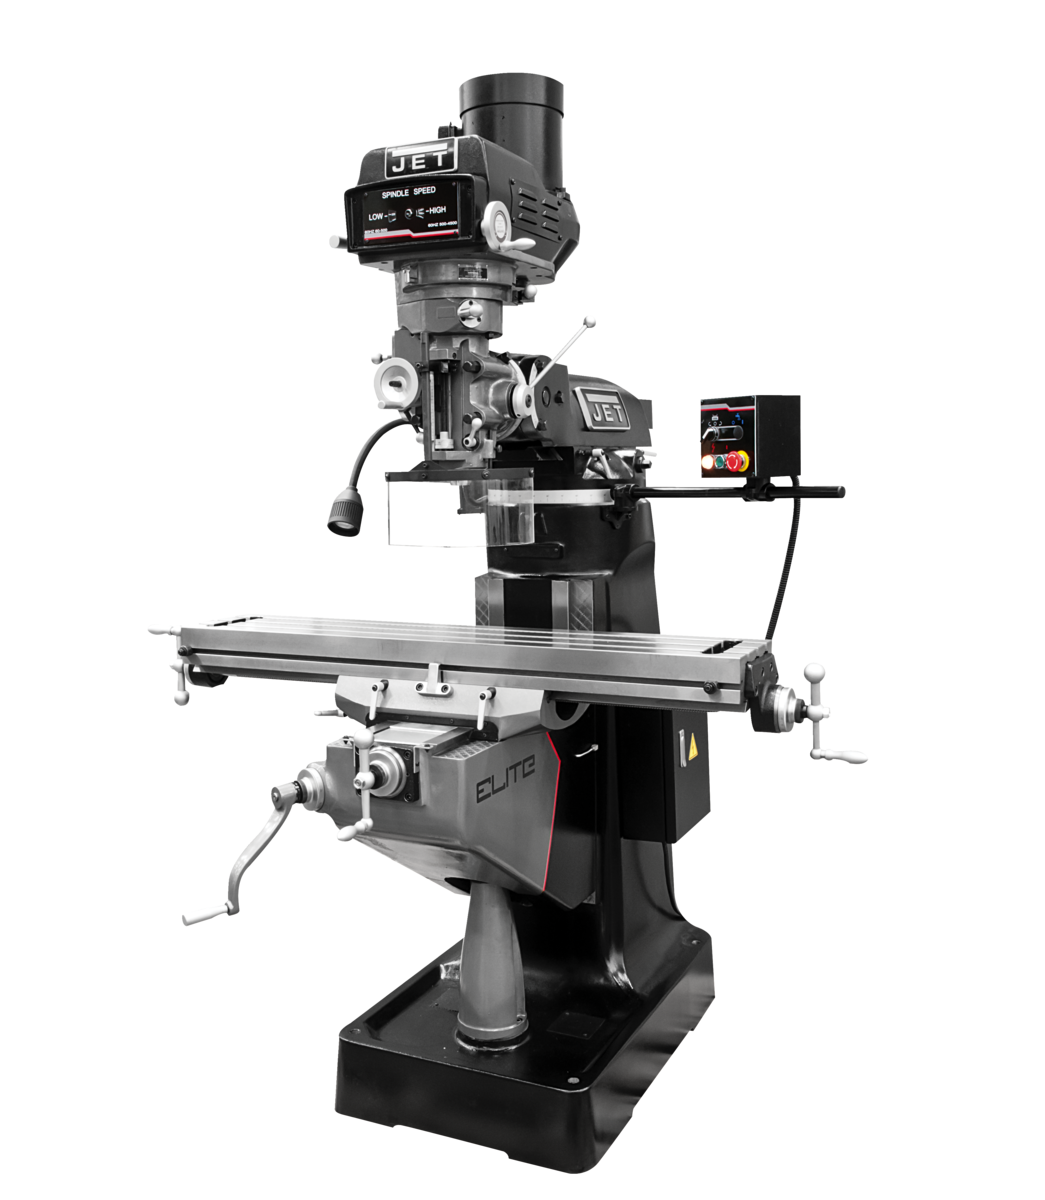 ETM-949 Mill with 2-Axis ACU-RITE 303 DRO and X, Y, Z-Axis JET Powerfeeds